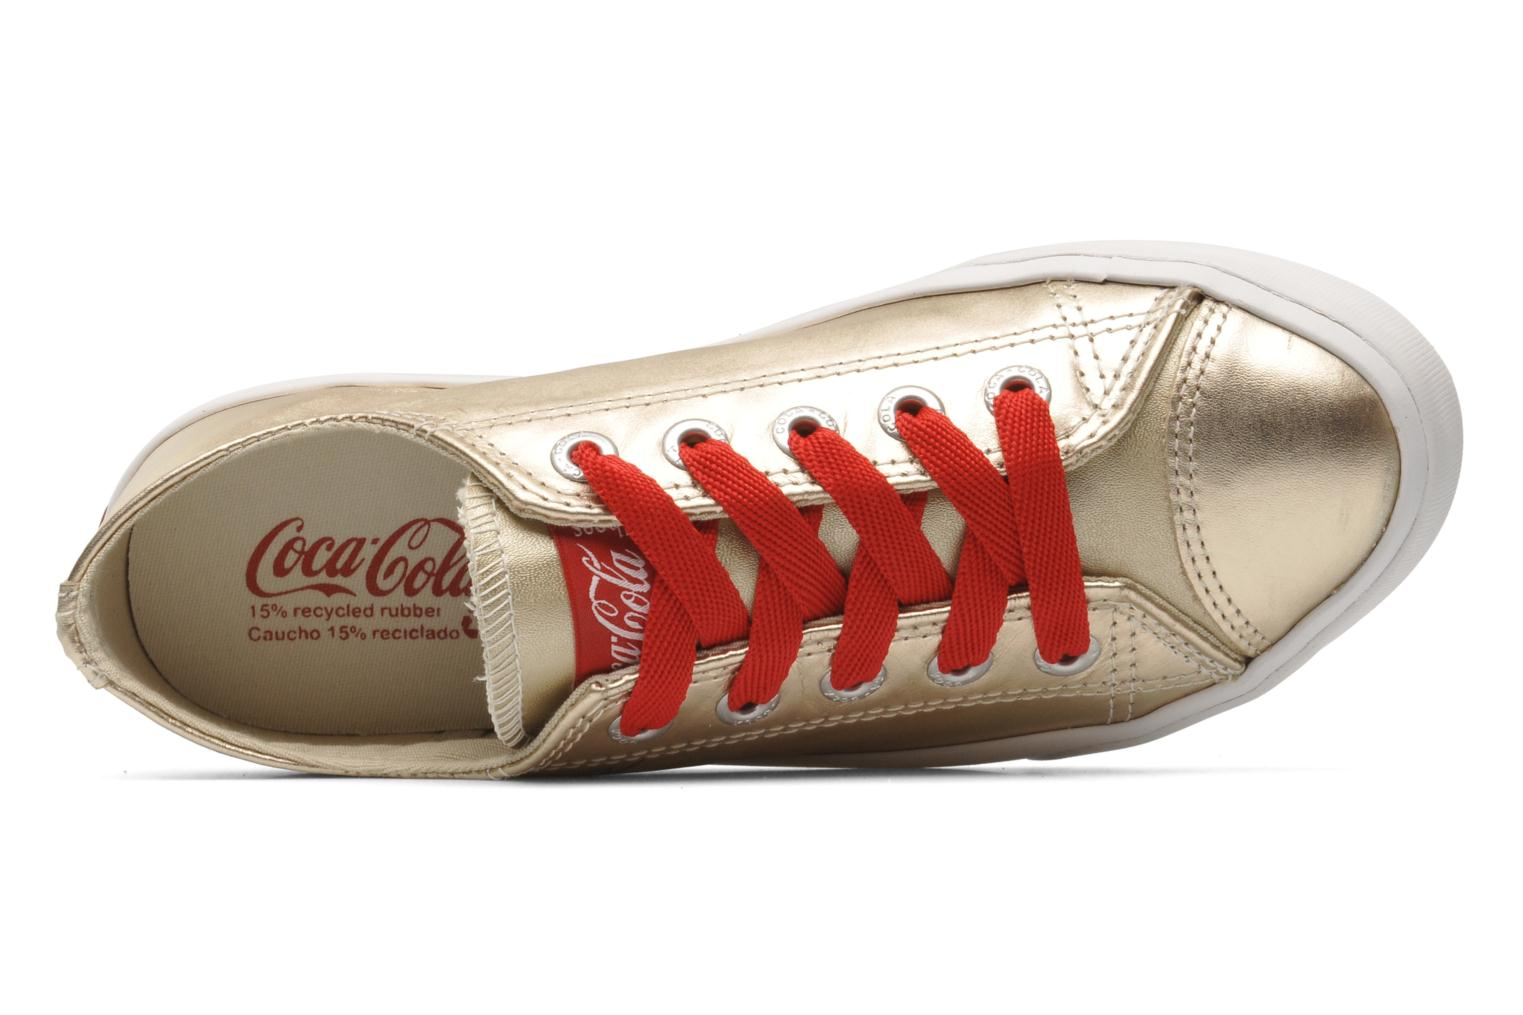 Sneakers Coca-cola shoes Plain leather Low Bronze och Guld bild från vänster sidan